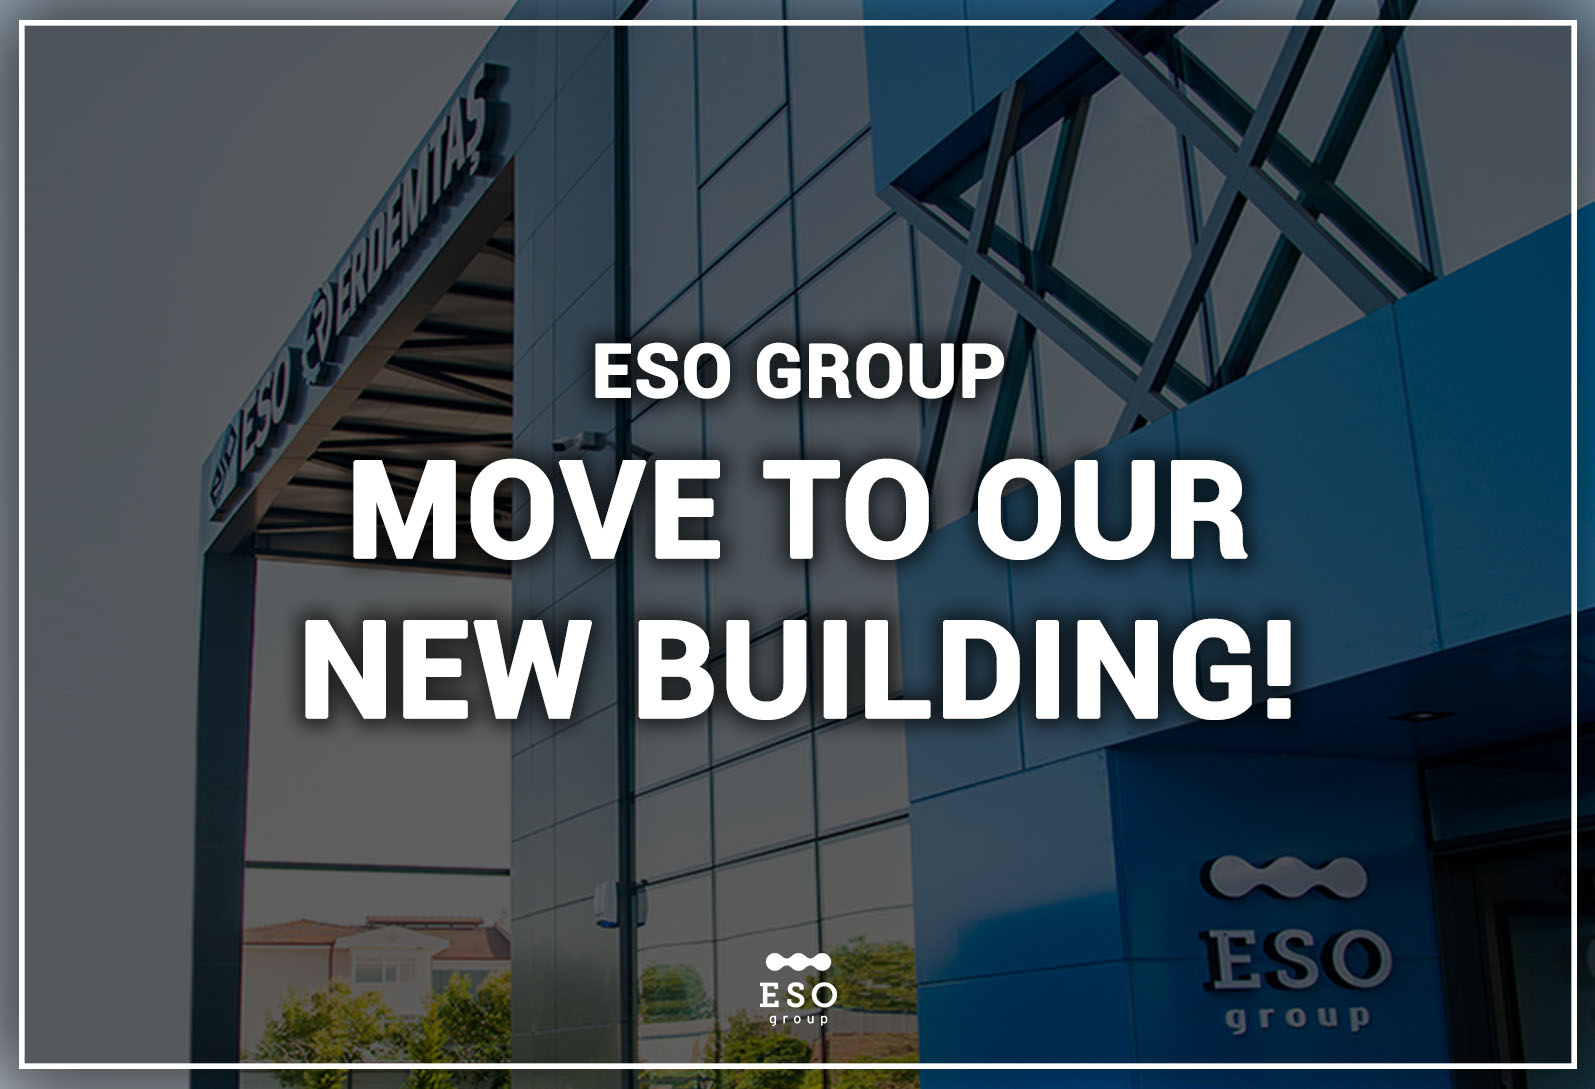 ESO Endüstriyel A.Ş. Moved to New Factory Building